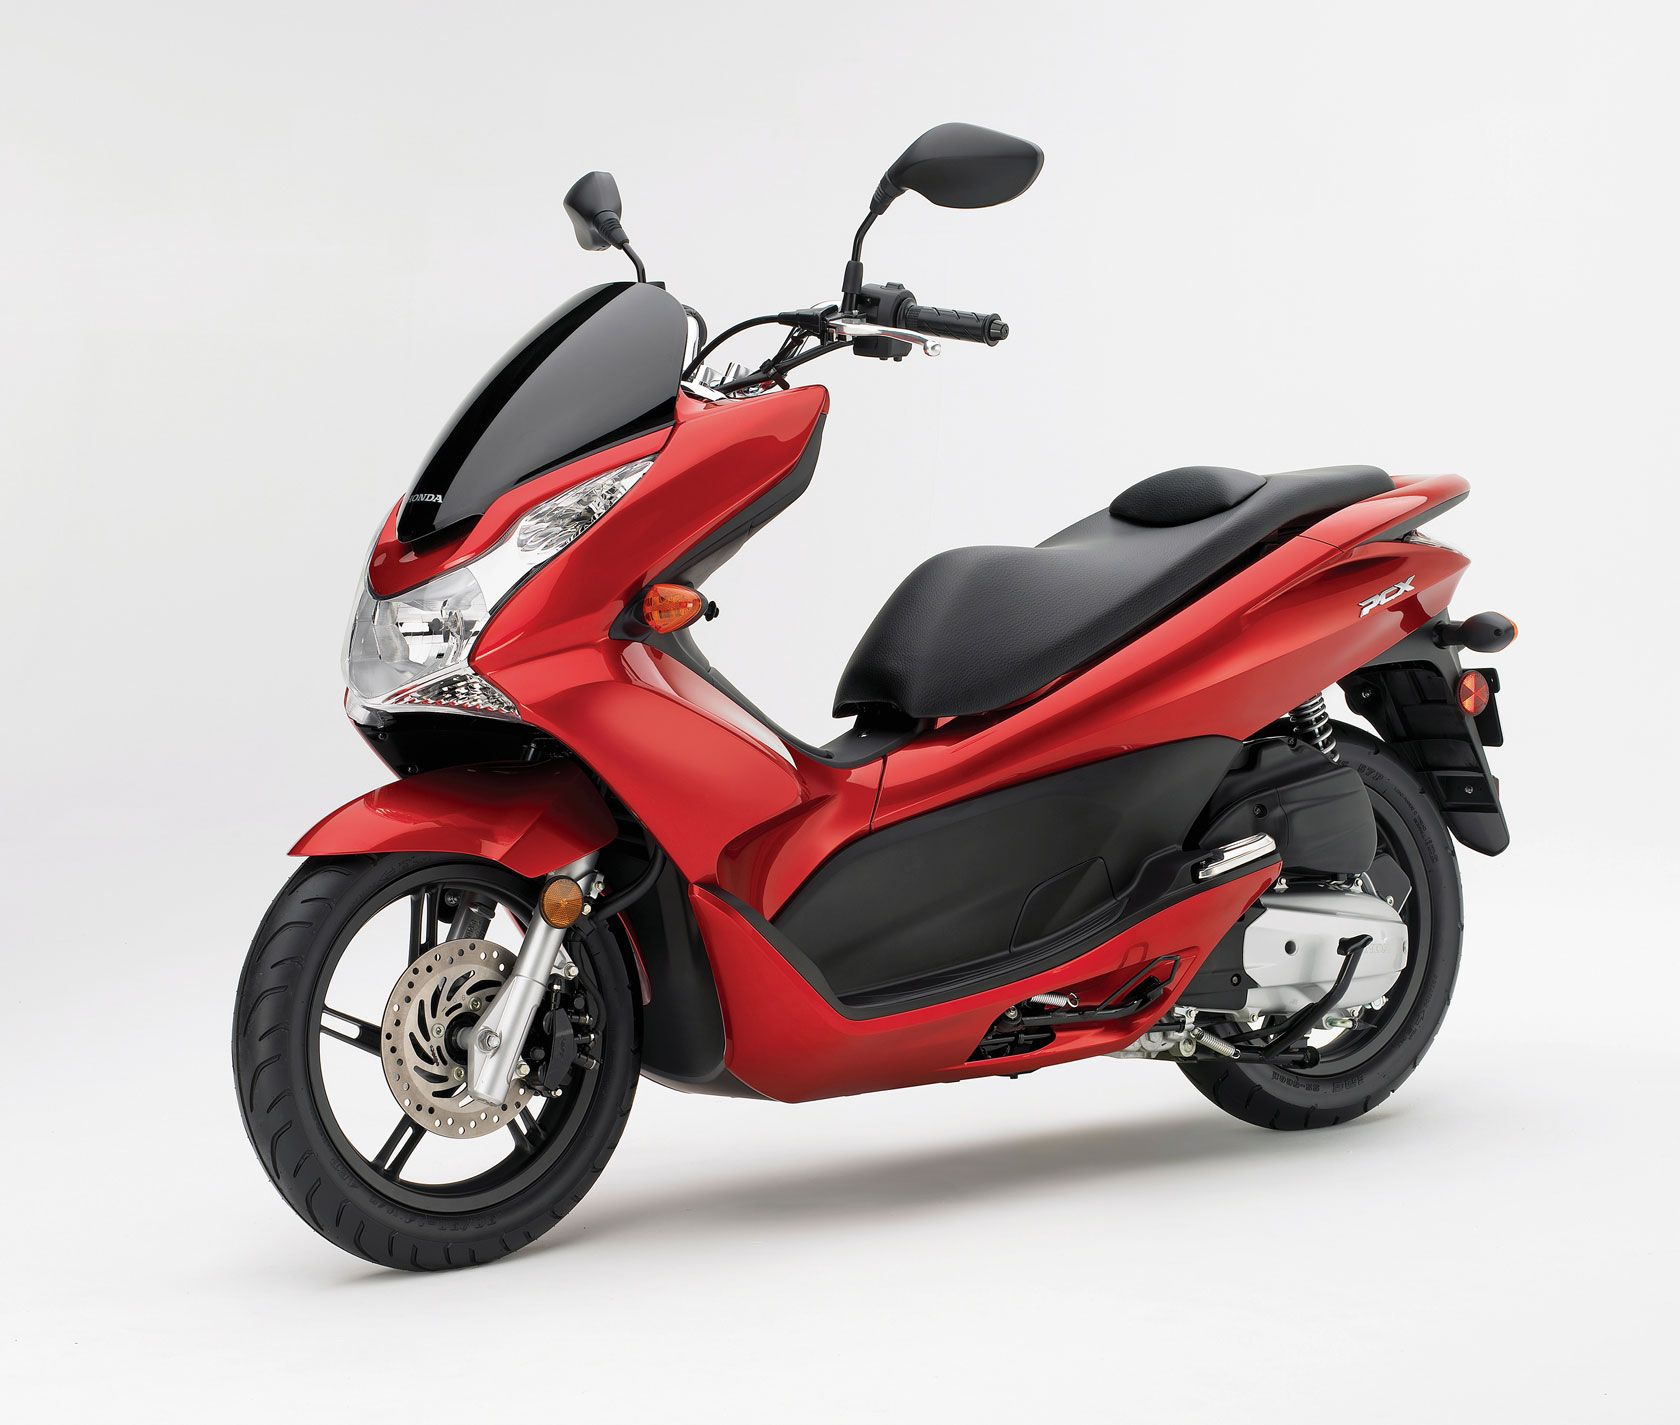 2011 Honda PCX 125 Scooter First Ride